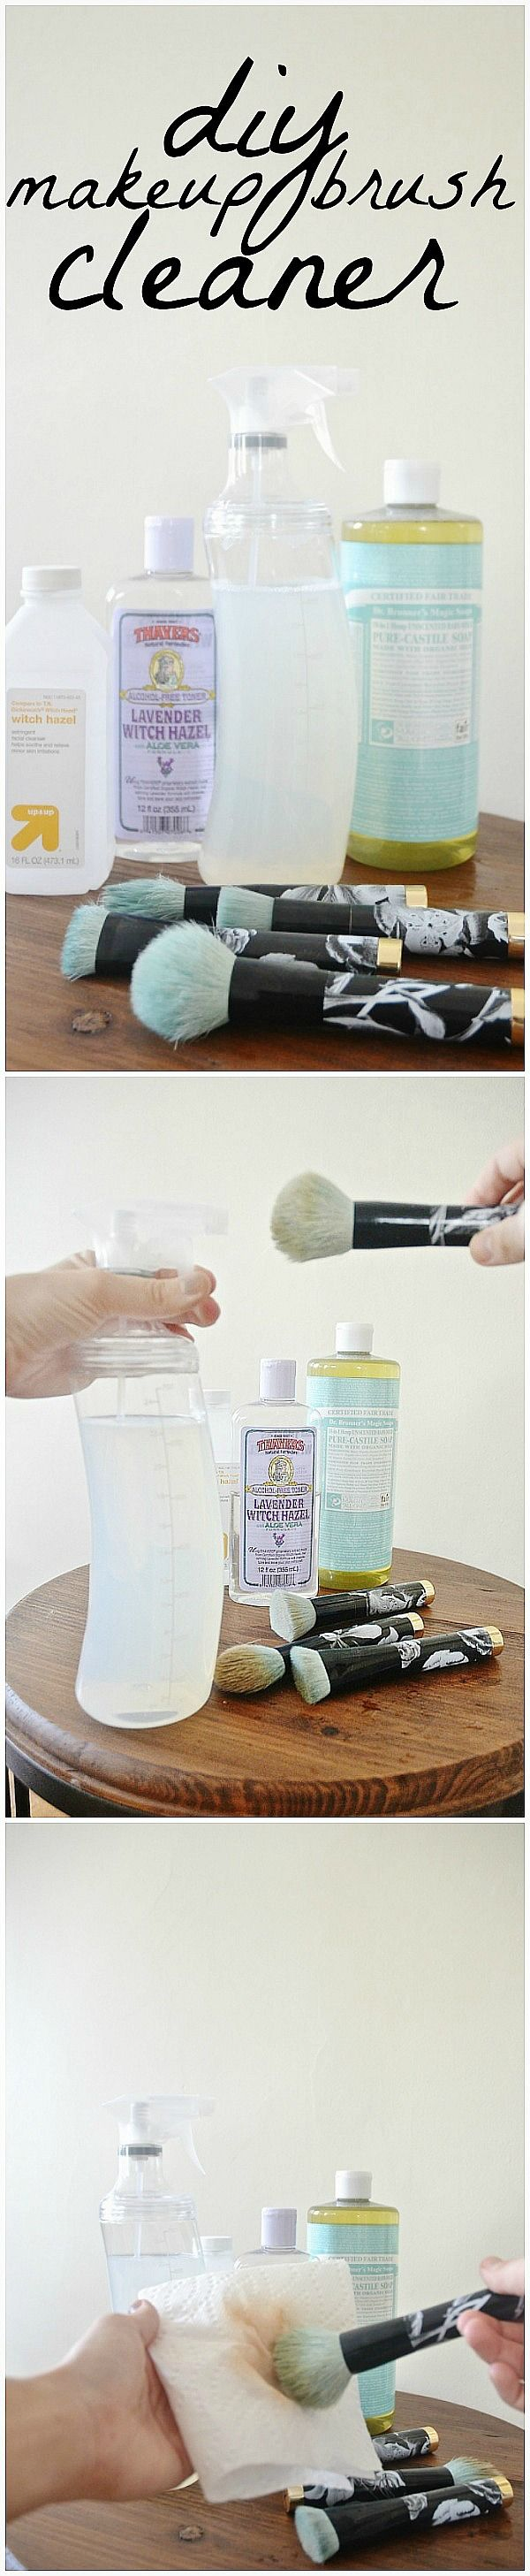 DIY Makeup Brush Cleaner| would be good for a quick cleaning in between the vinegar and dish soap wash